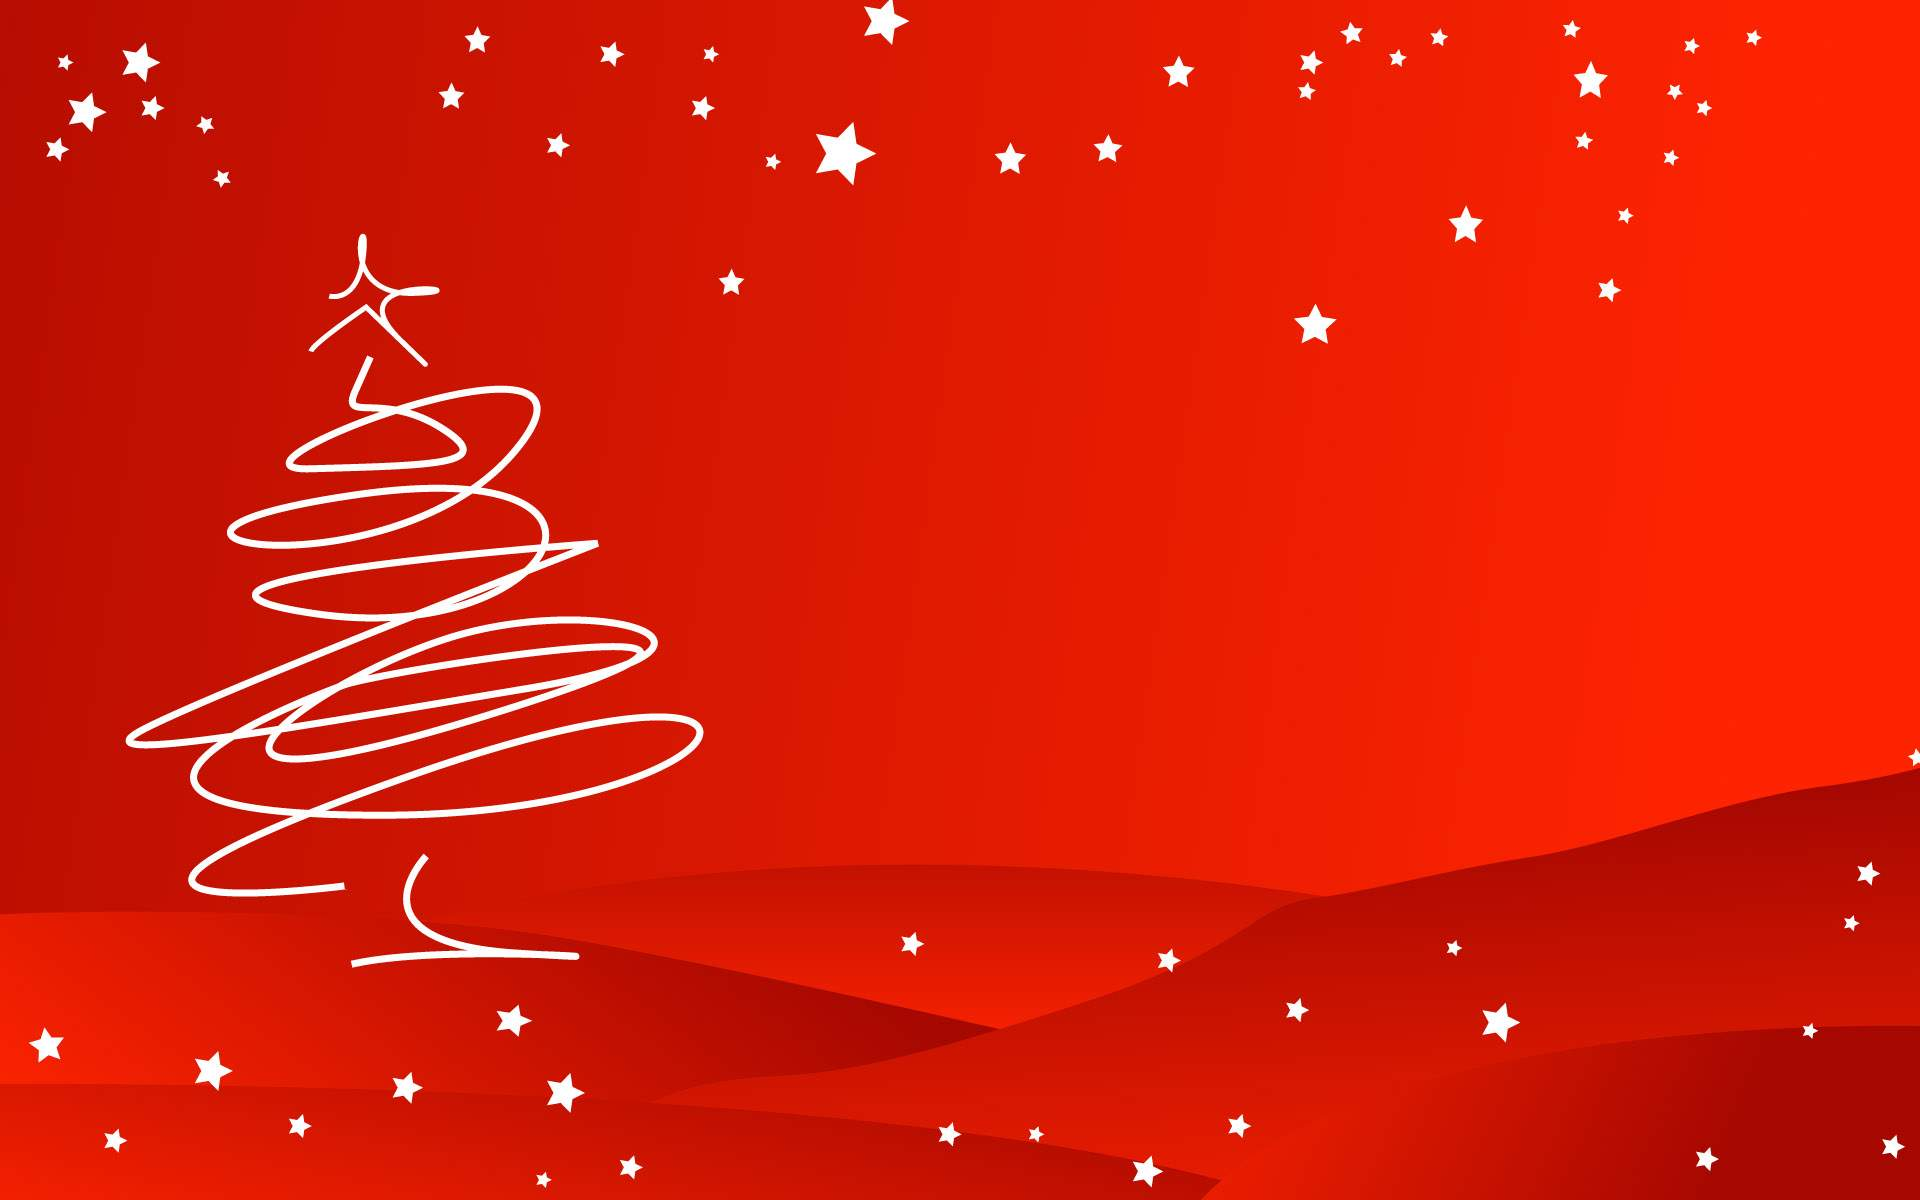 Christmas Backgrounds Image